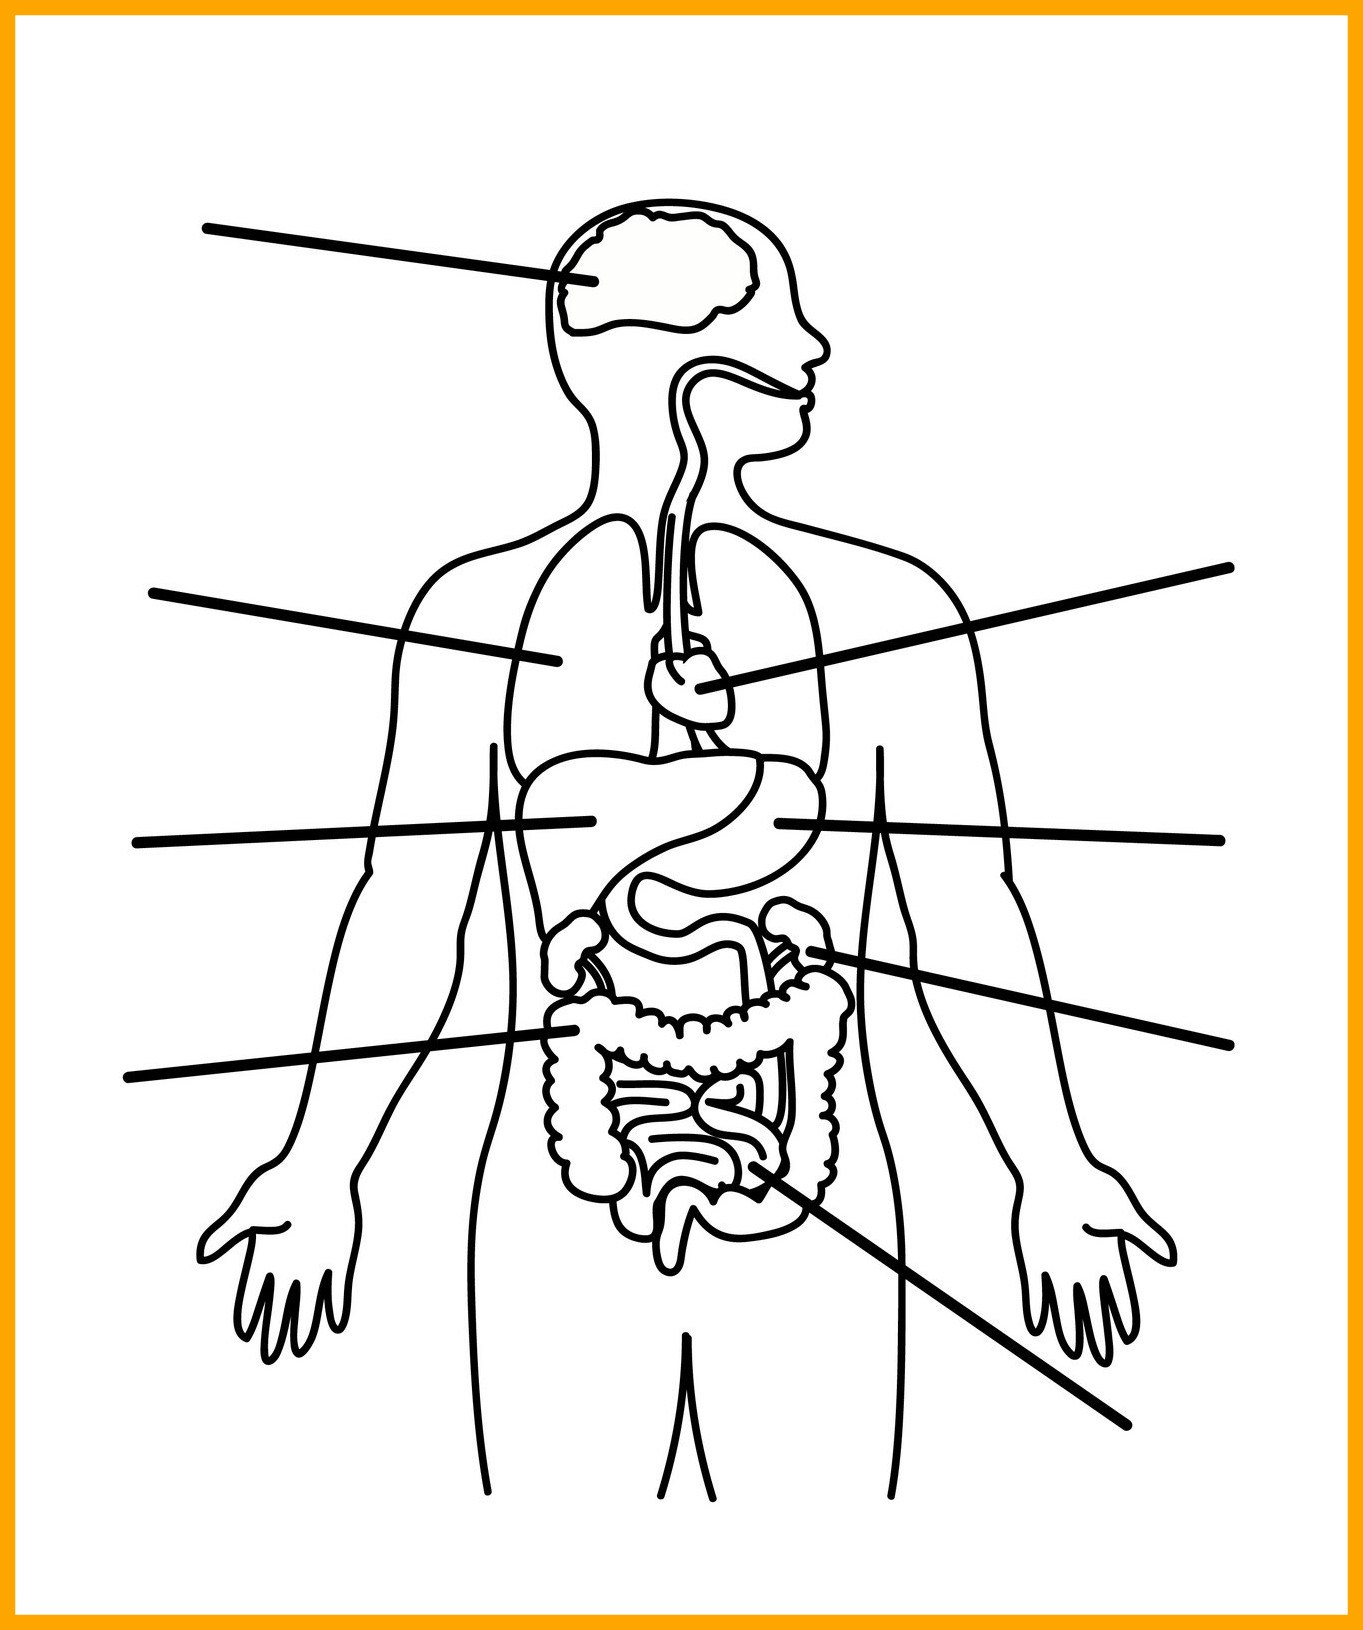 Human Body Coloring Pages For Kids At Getcolorings